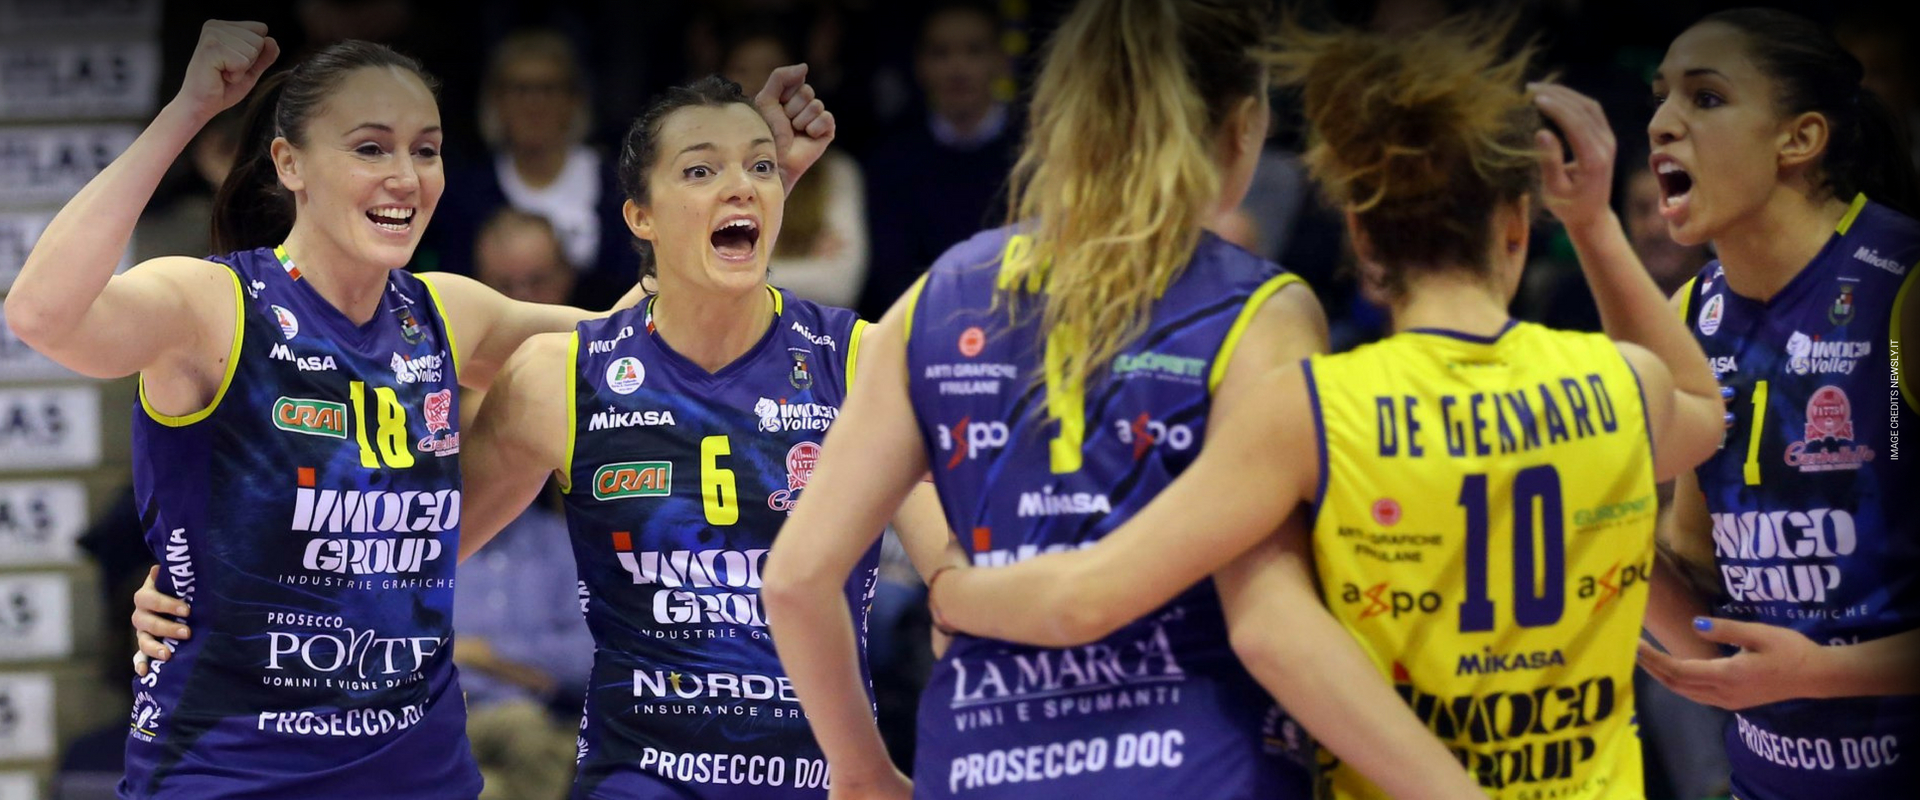 imoco volley fan engagement